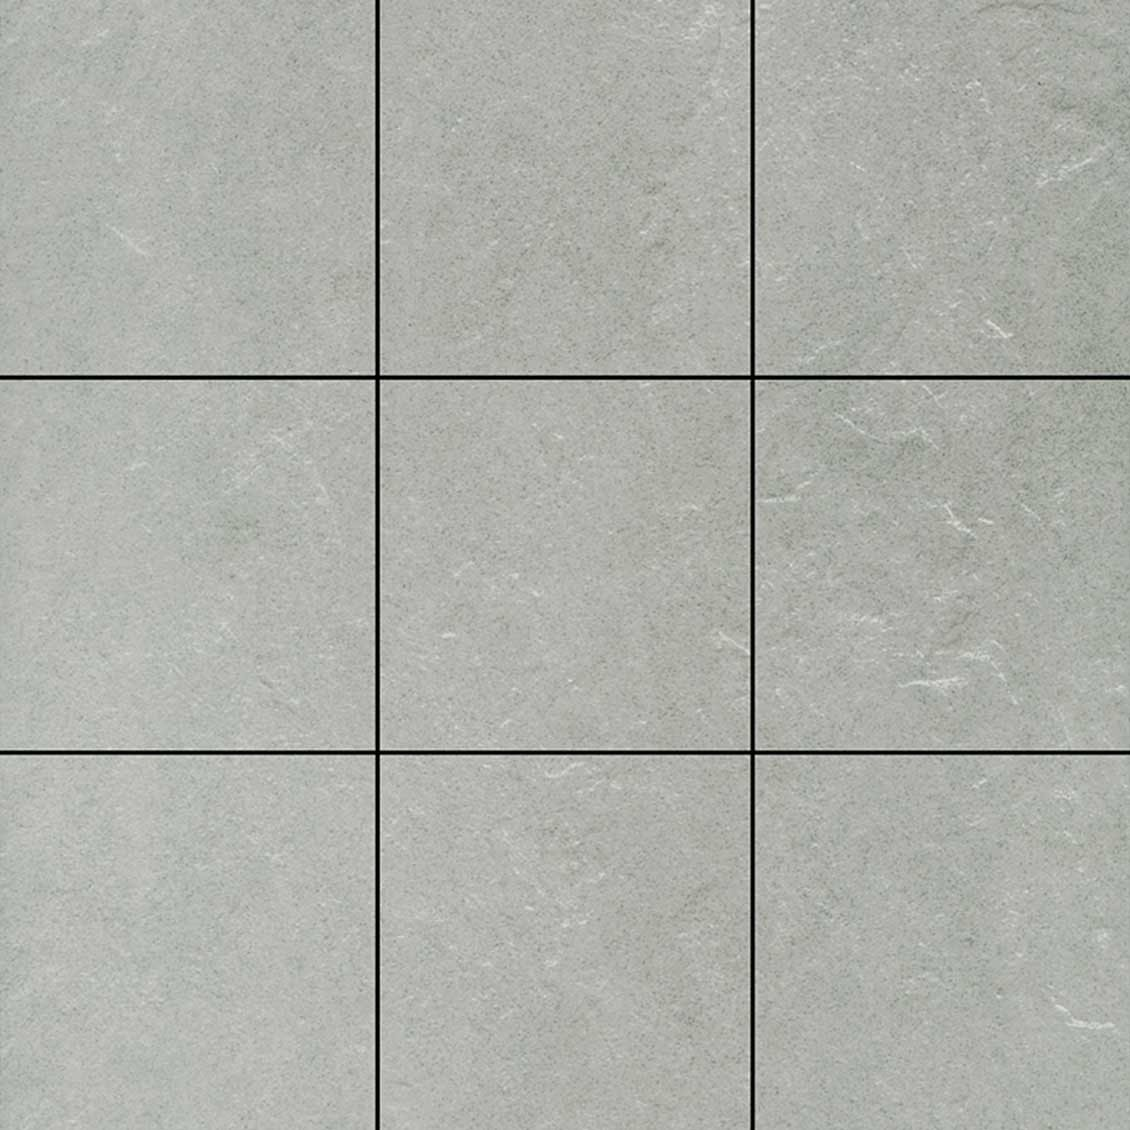 Carrelage design carrelage texture moderne design pour for Carrelage design